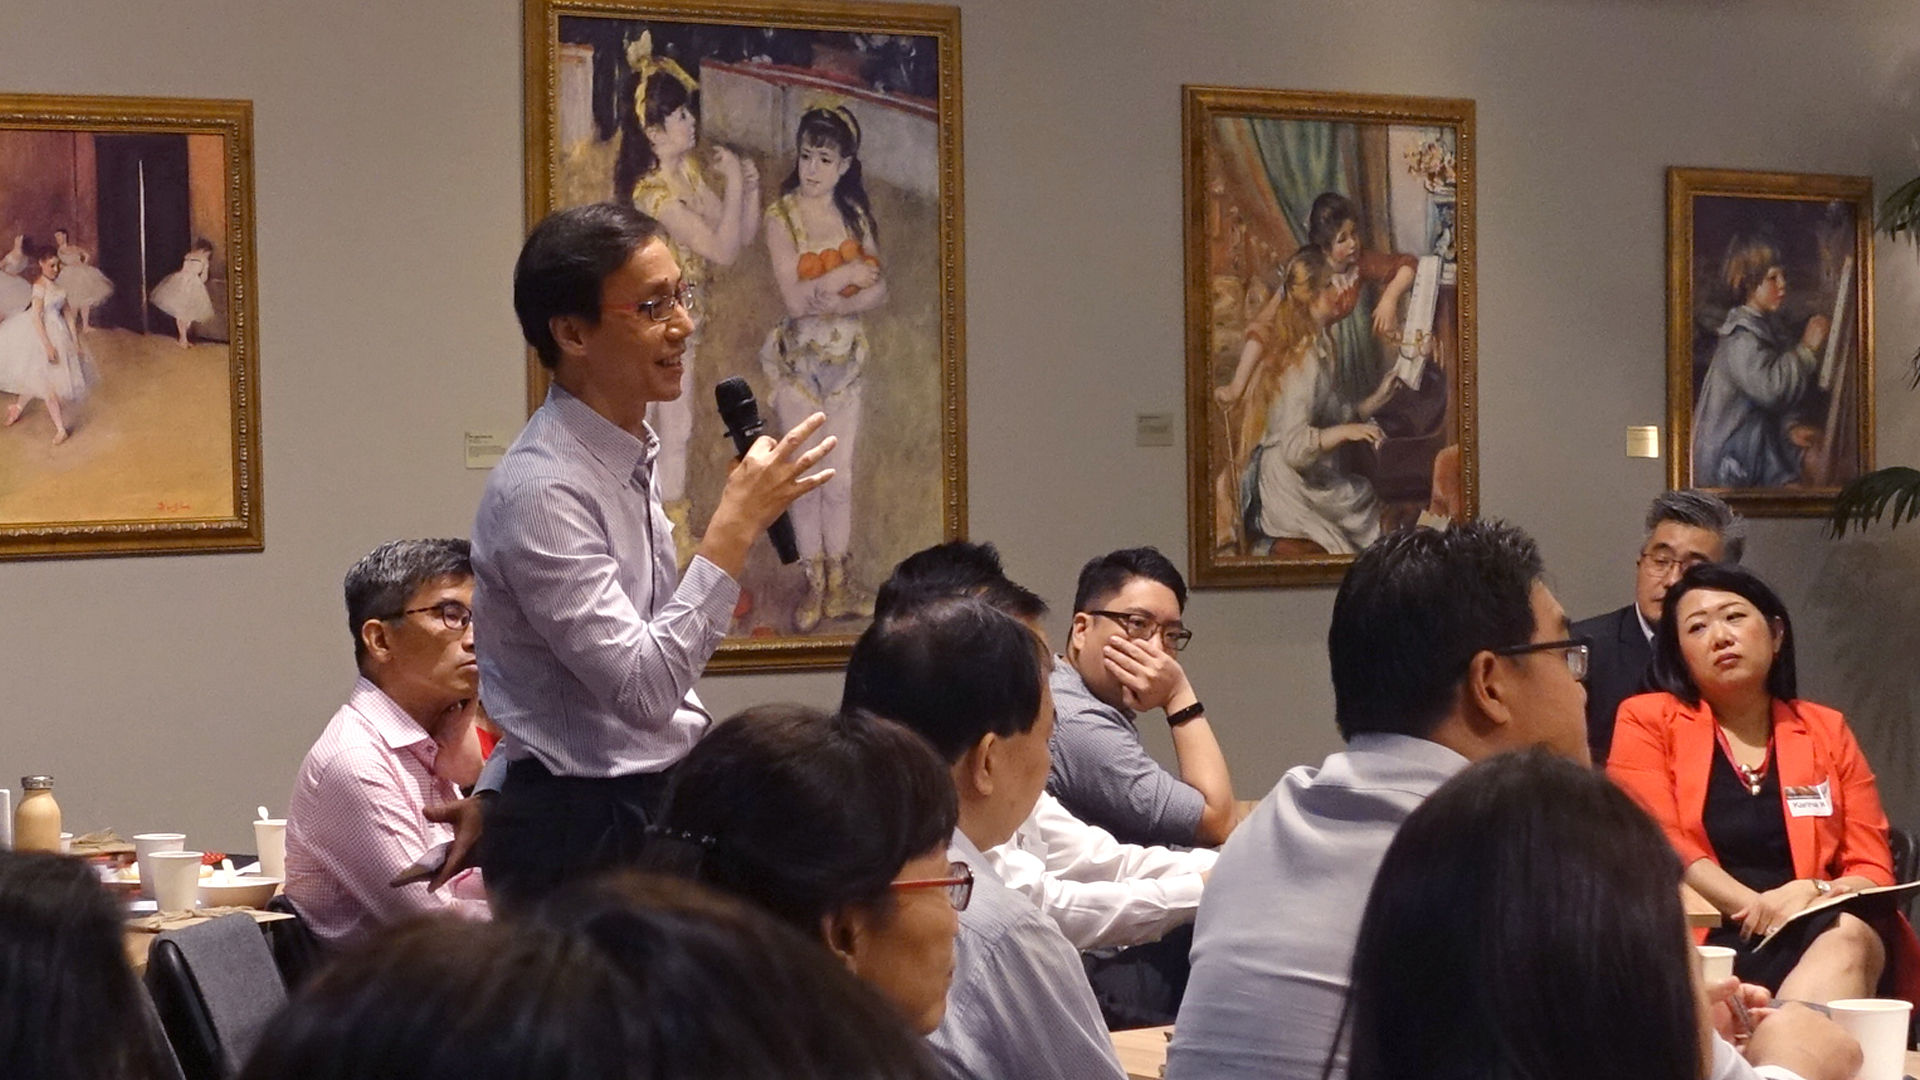 Mr Lee Wai Hoong (Head—Partnership, Focus on the Family) asking a question during Q&A